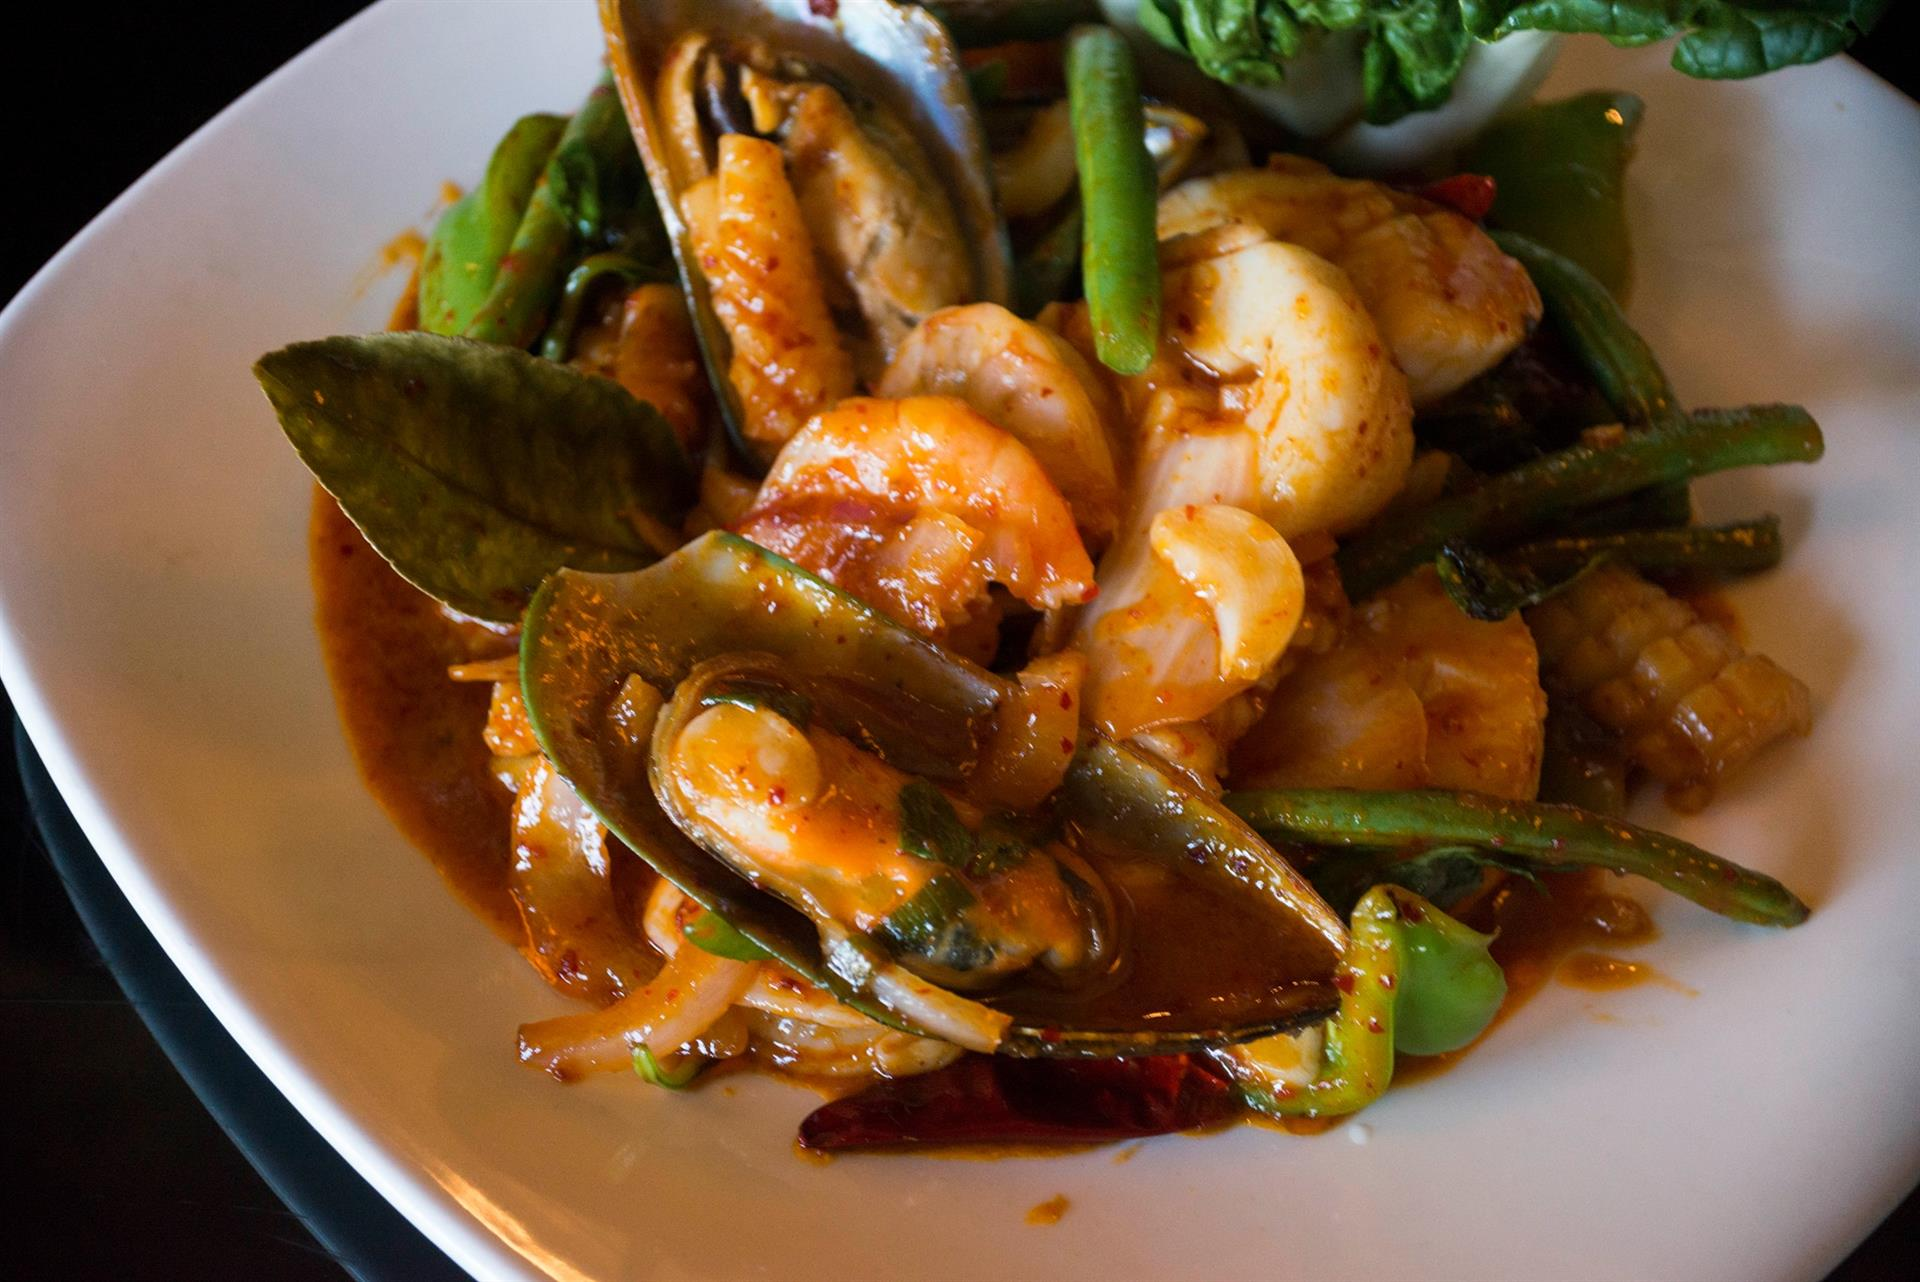 shrimp, mussles and vegetables with sauce